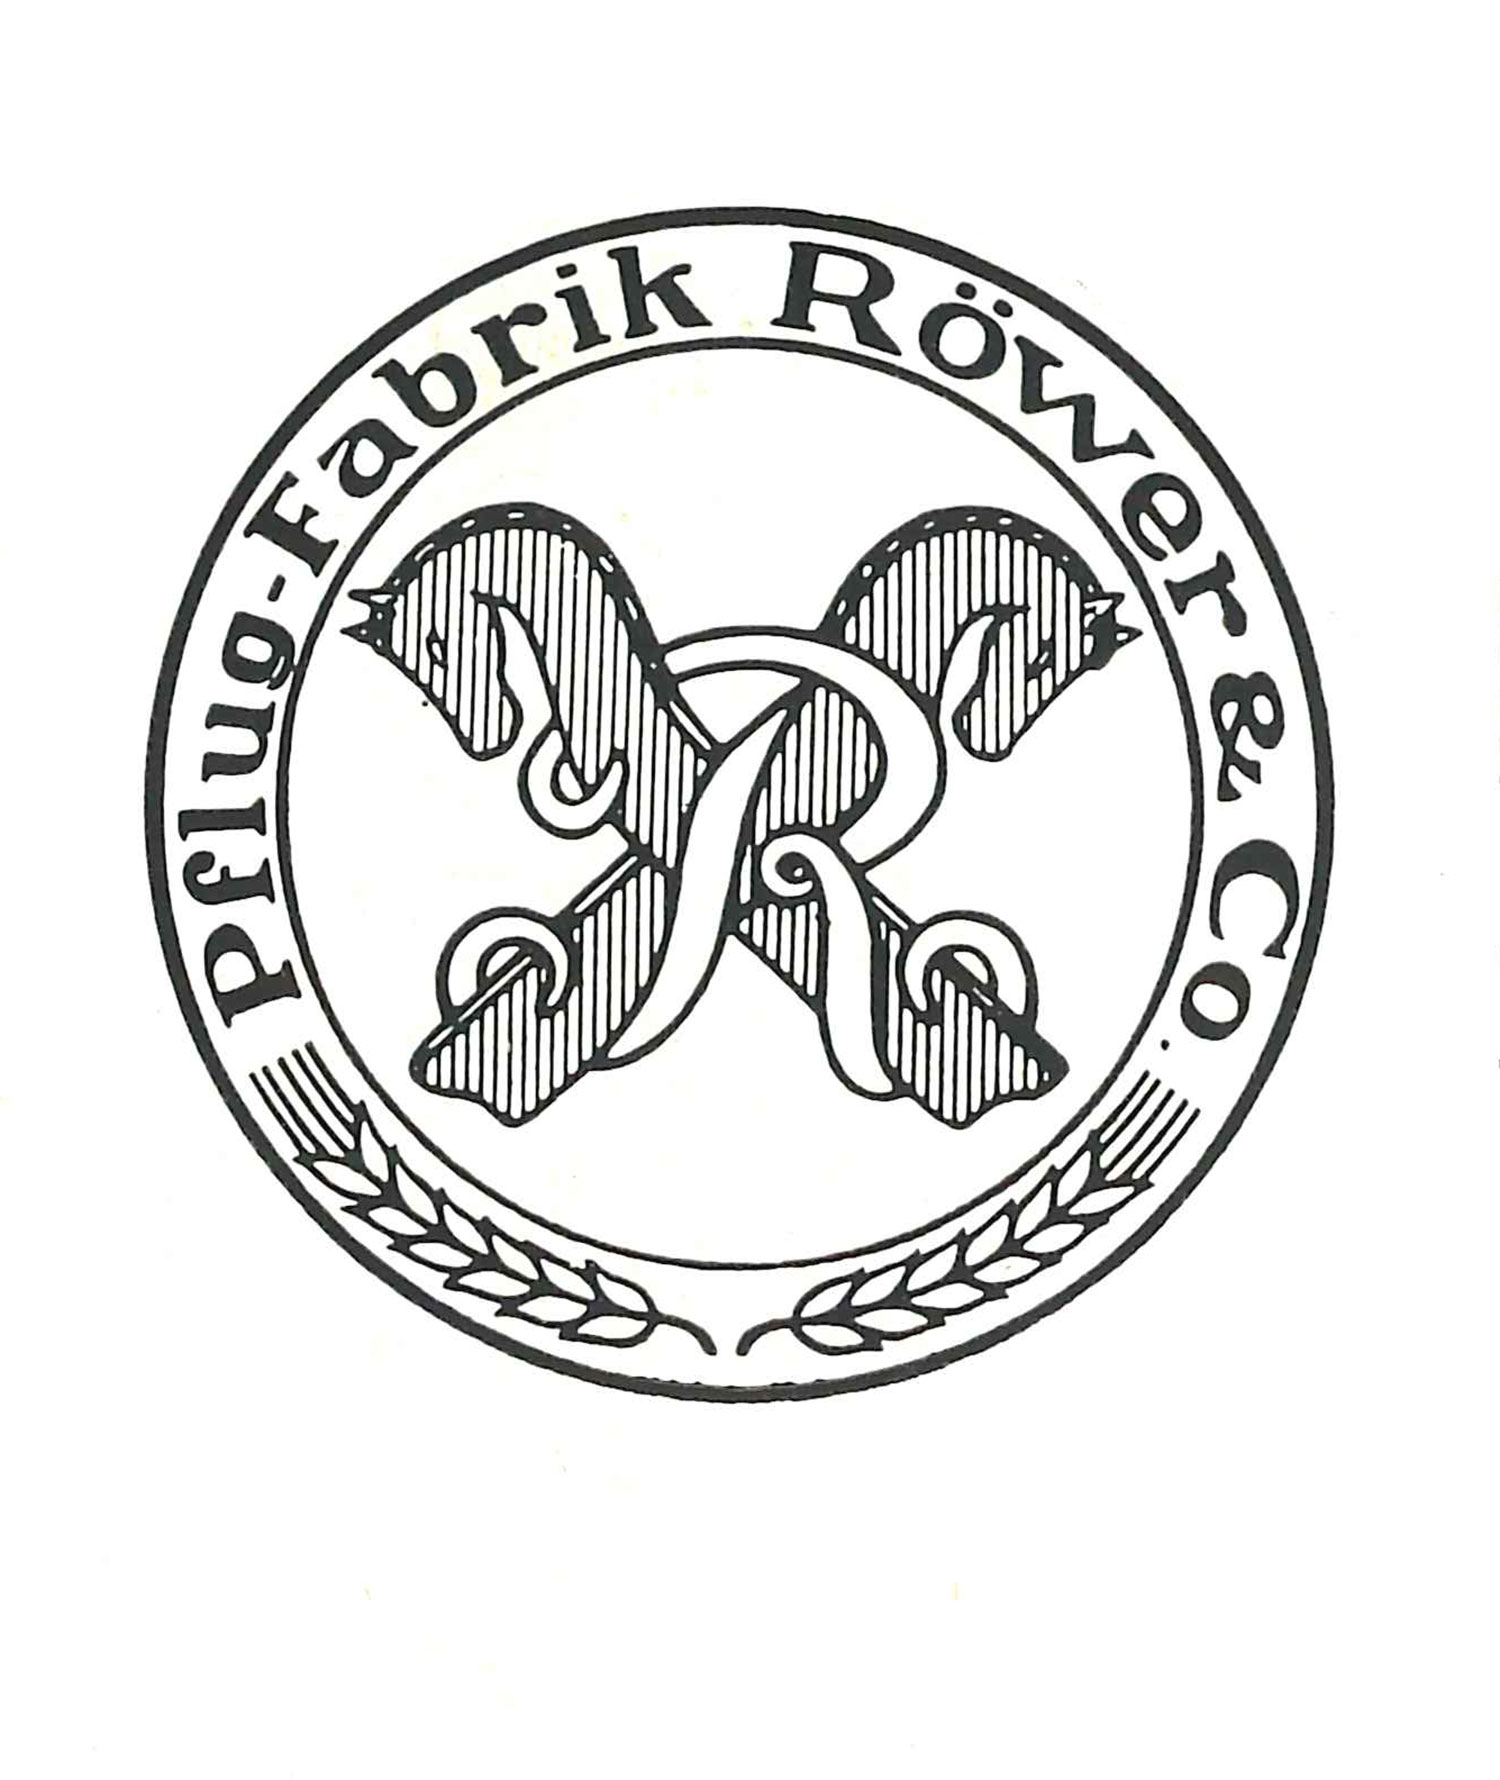 Pflugfabrik Röwer & Co.